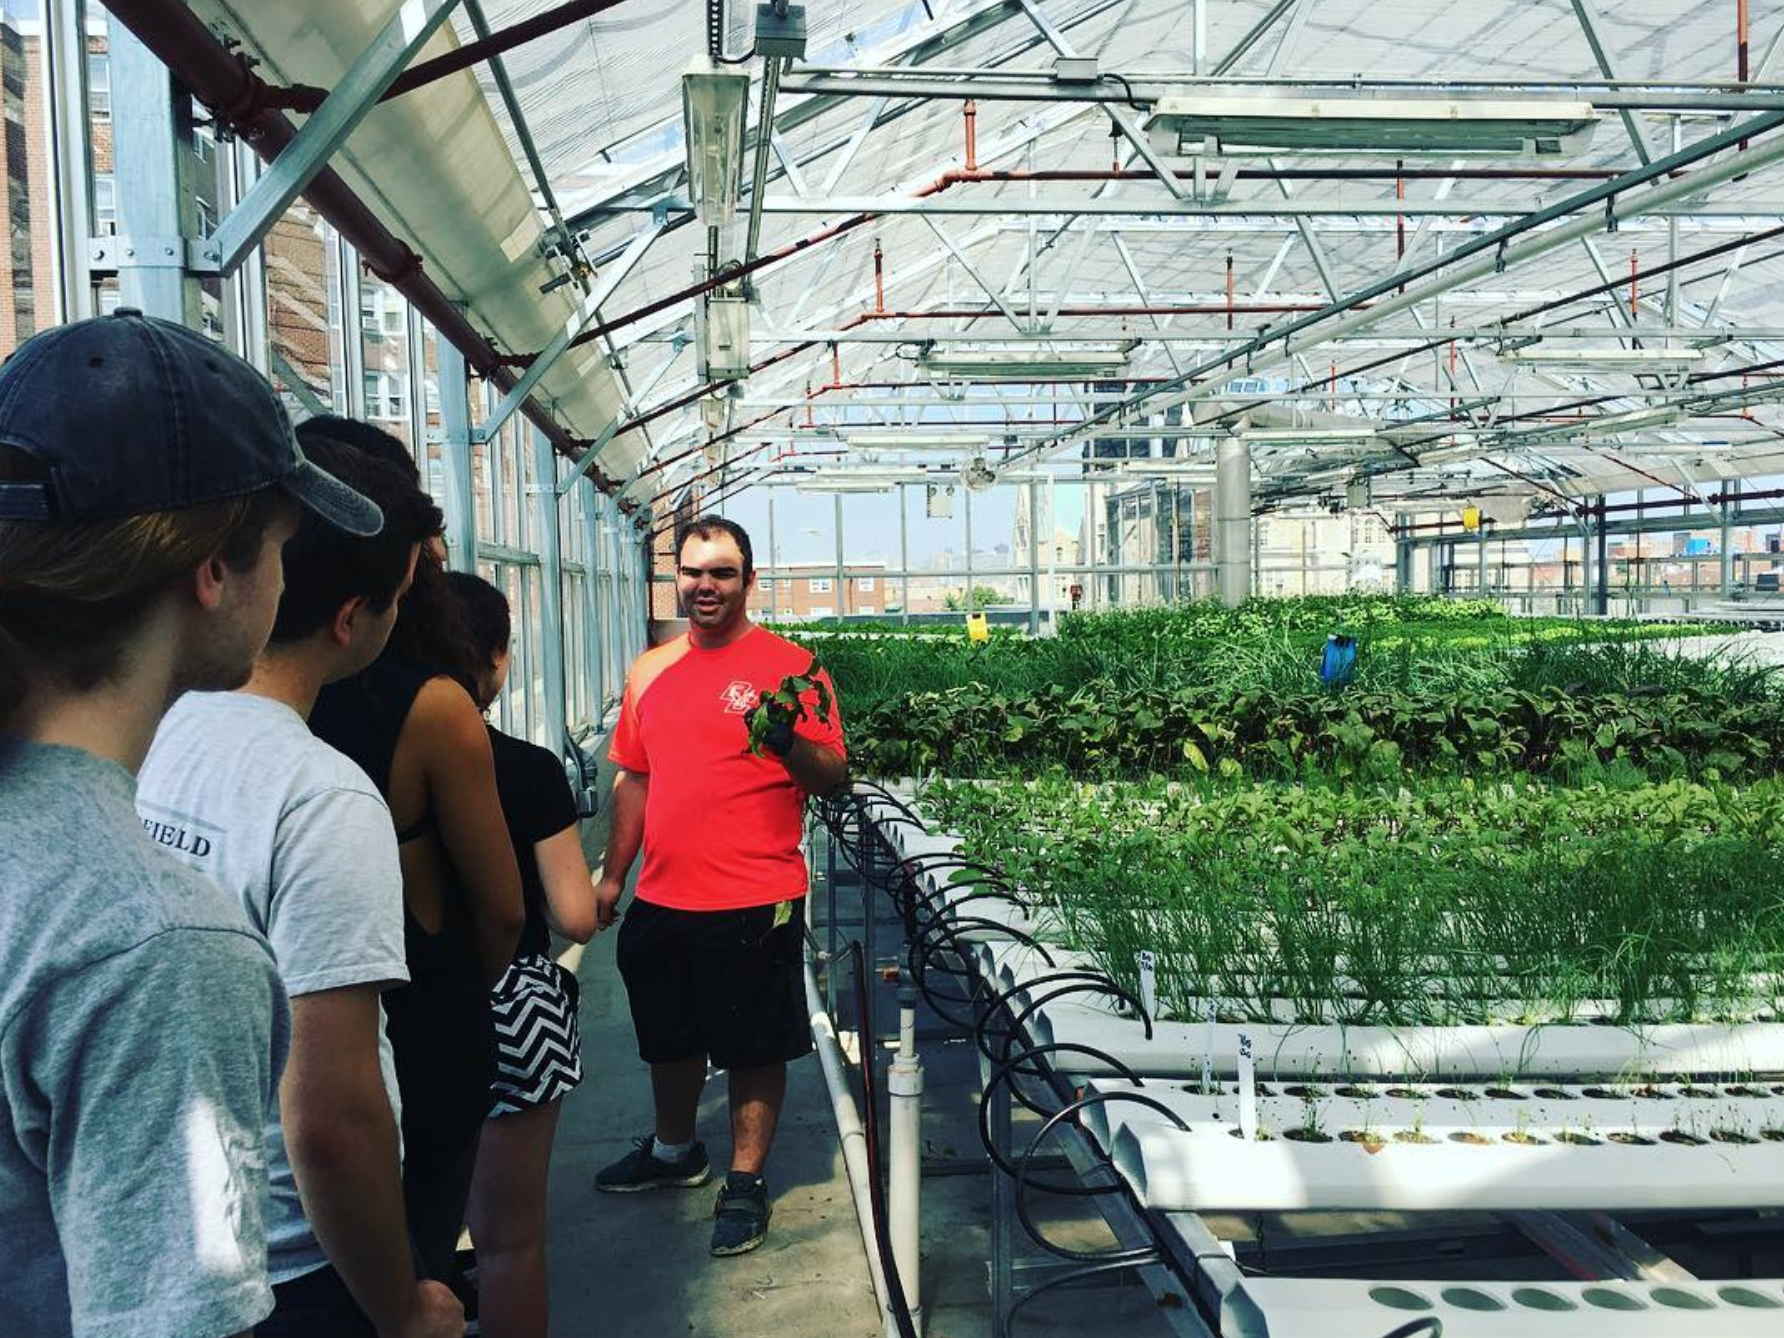 Commercial Urban Agriculture and Hydroponics Classes